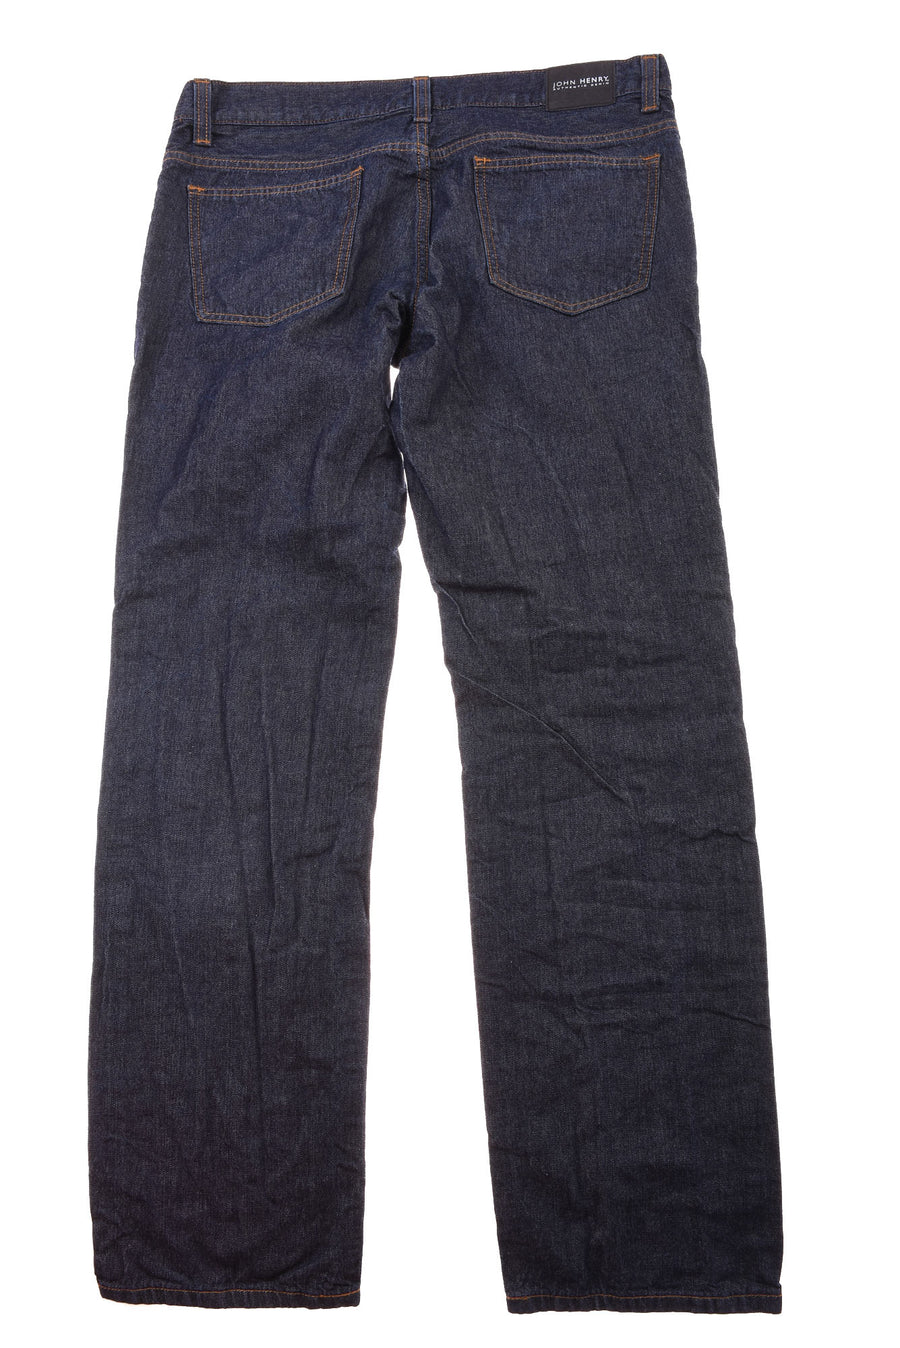 USED John Henry Men's Pants 34x32 Blue